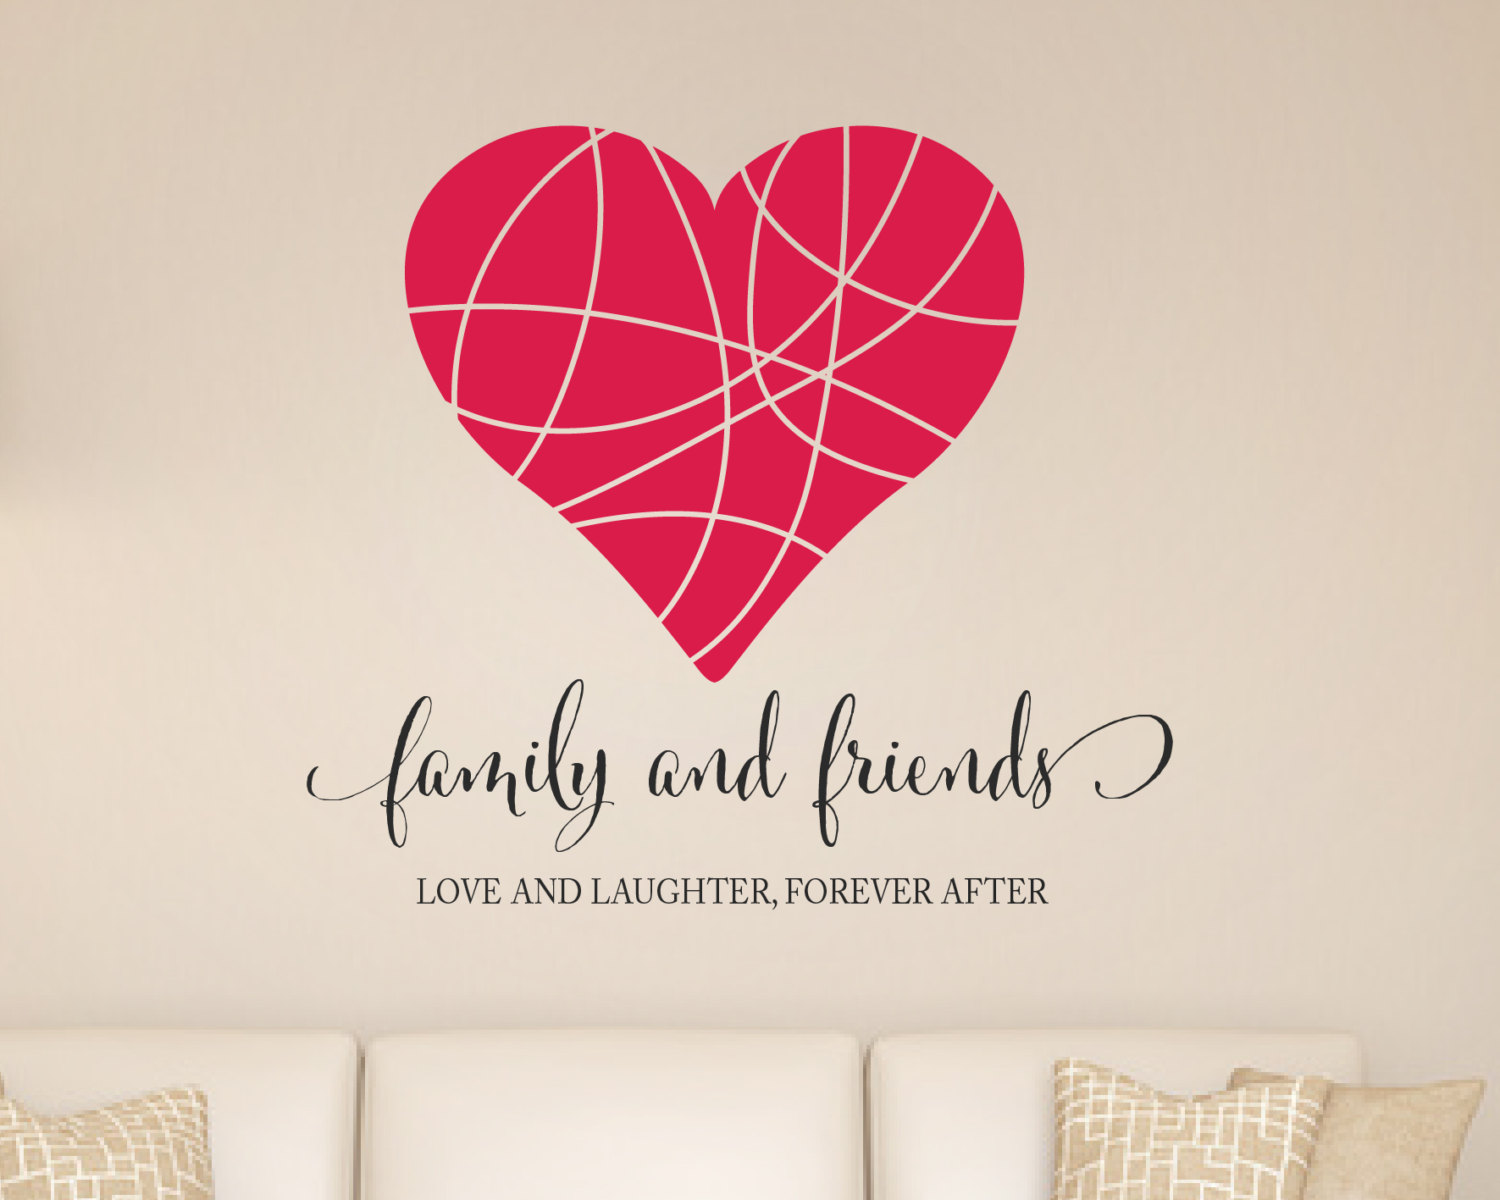 Home / Wall Stickers ...